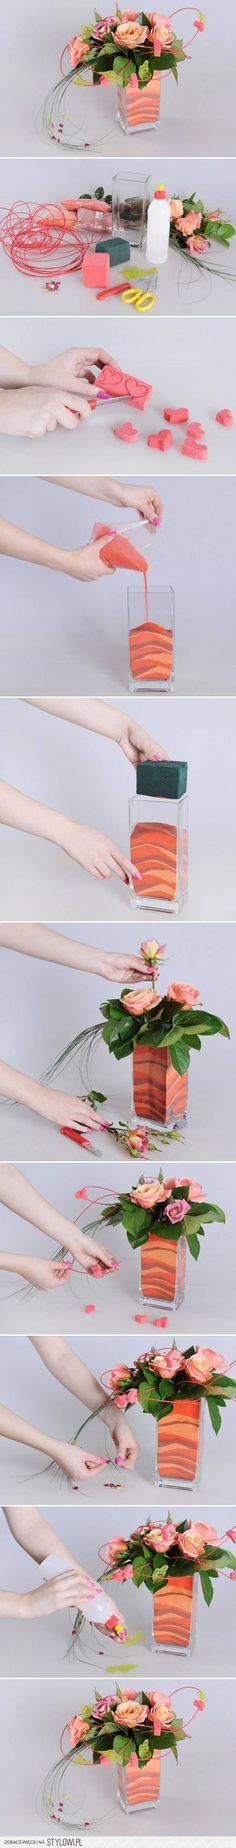 DIY Flower Vase with Sand DIY Projects | UsefulDIY.com na Stylowi.pl